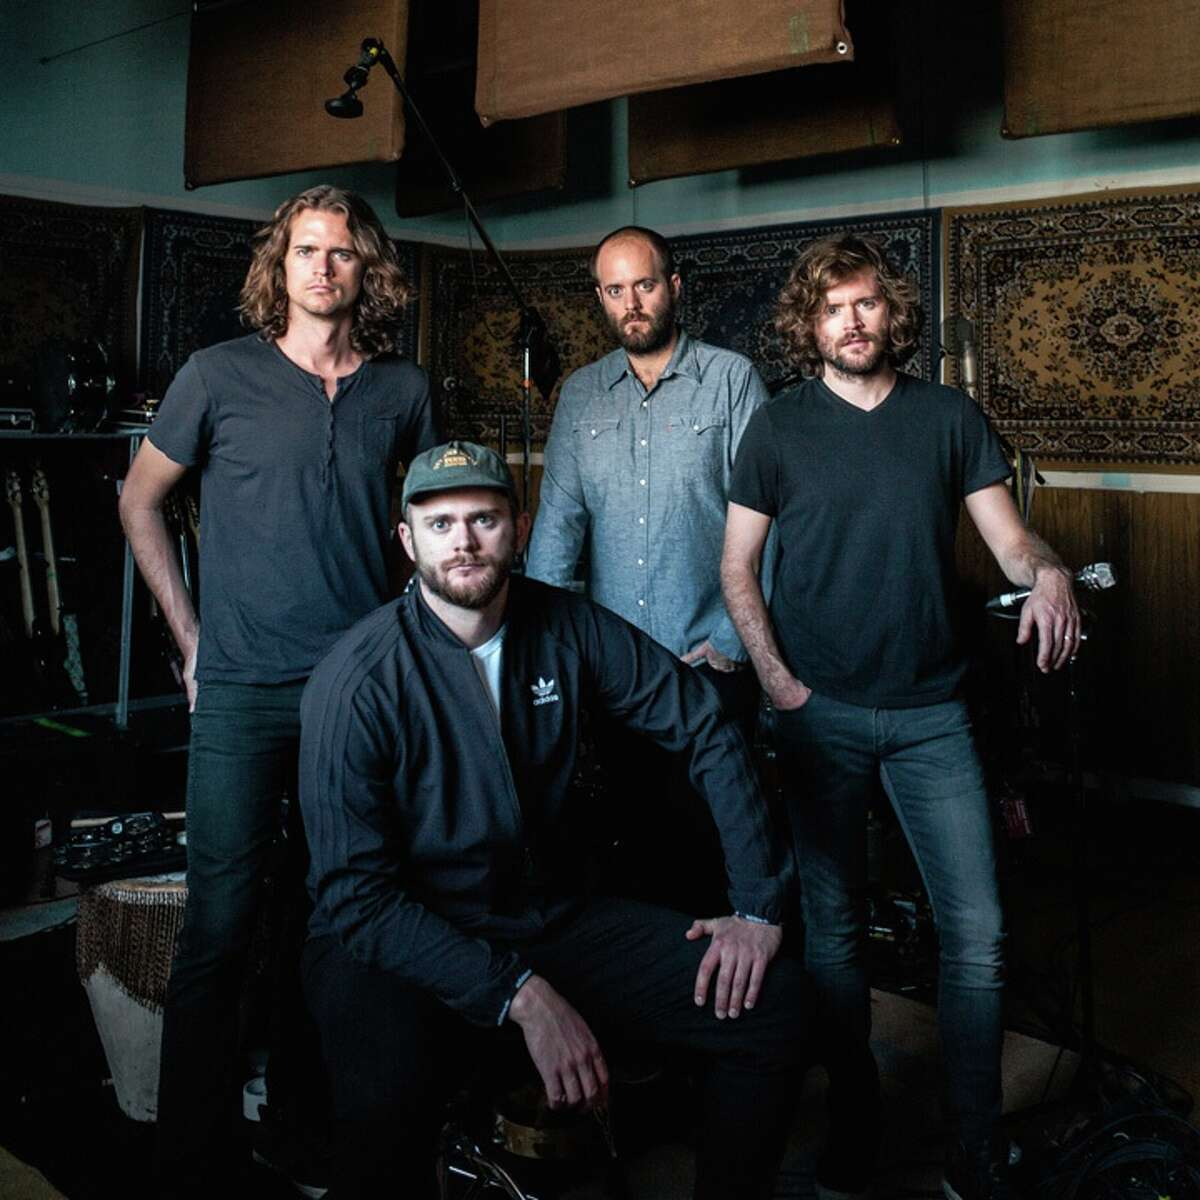 KONGOS headline the main stage at Albany's 71st annual Tulip Fest on Saturday, May 11, 2019.